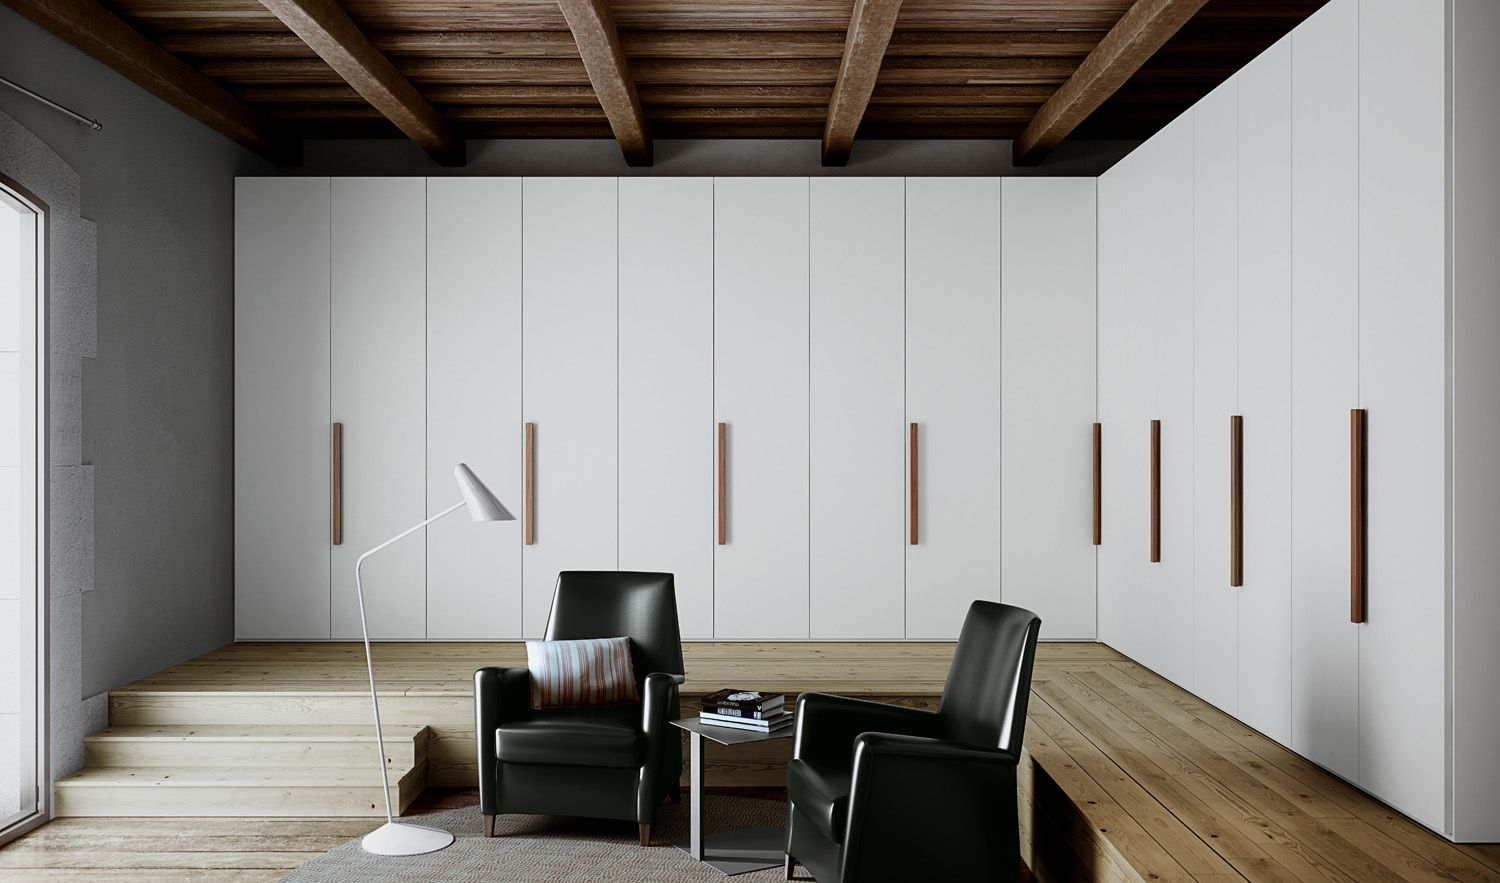 Captivating Gorgeous White Wardrobes With Wooden Simple Wooden Handles By Carré Pictures Gallery